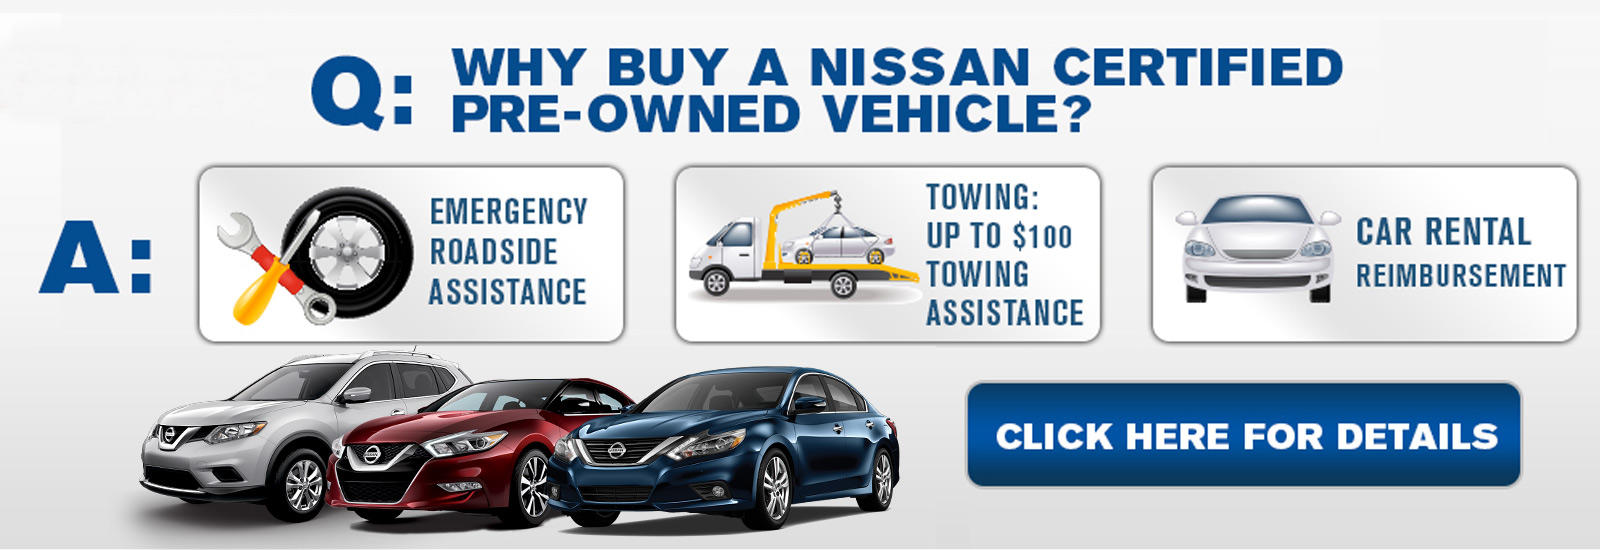 nj to choose lease trentonian maguire sale holiday season nissan dealers the in tag windsor blog auto